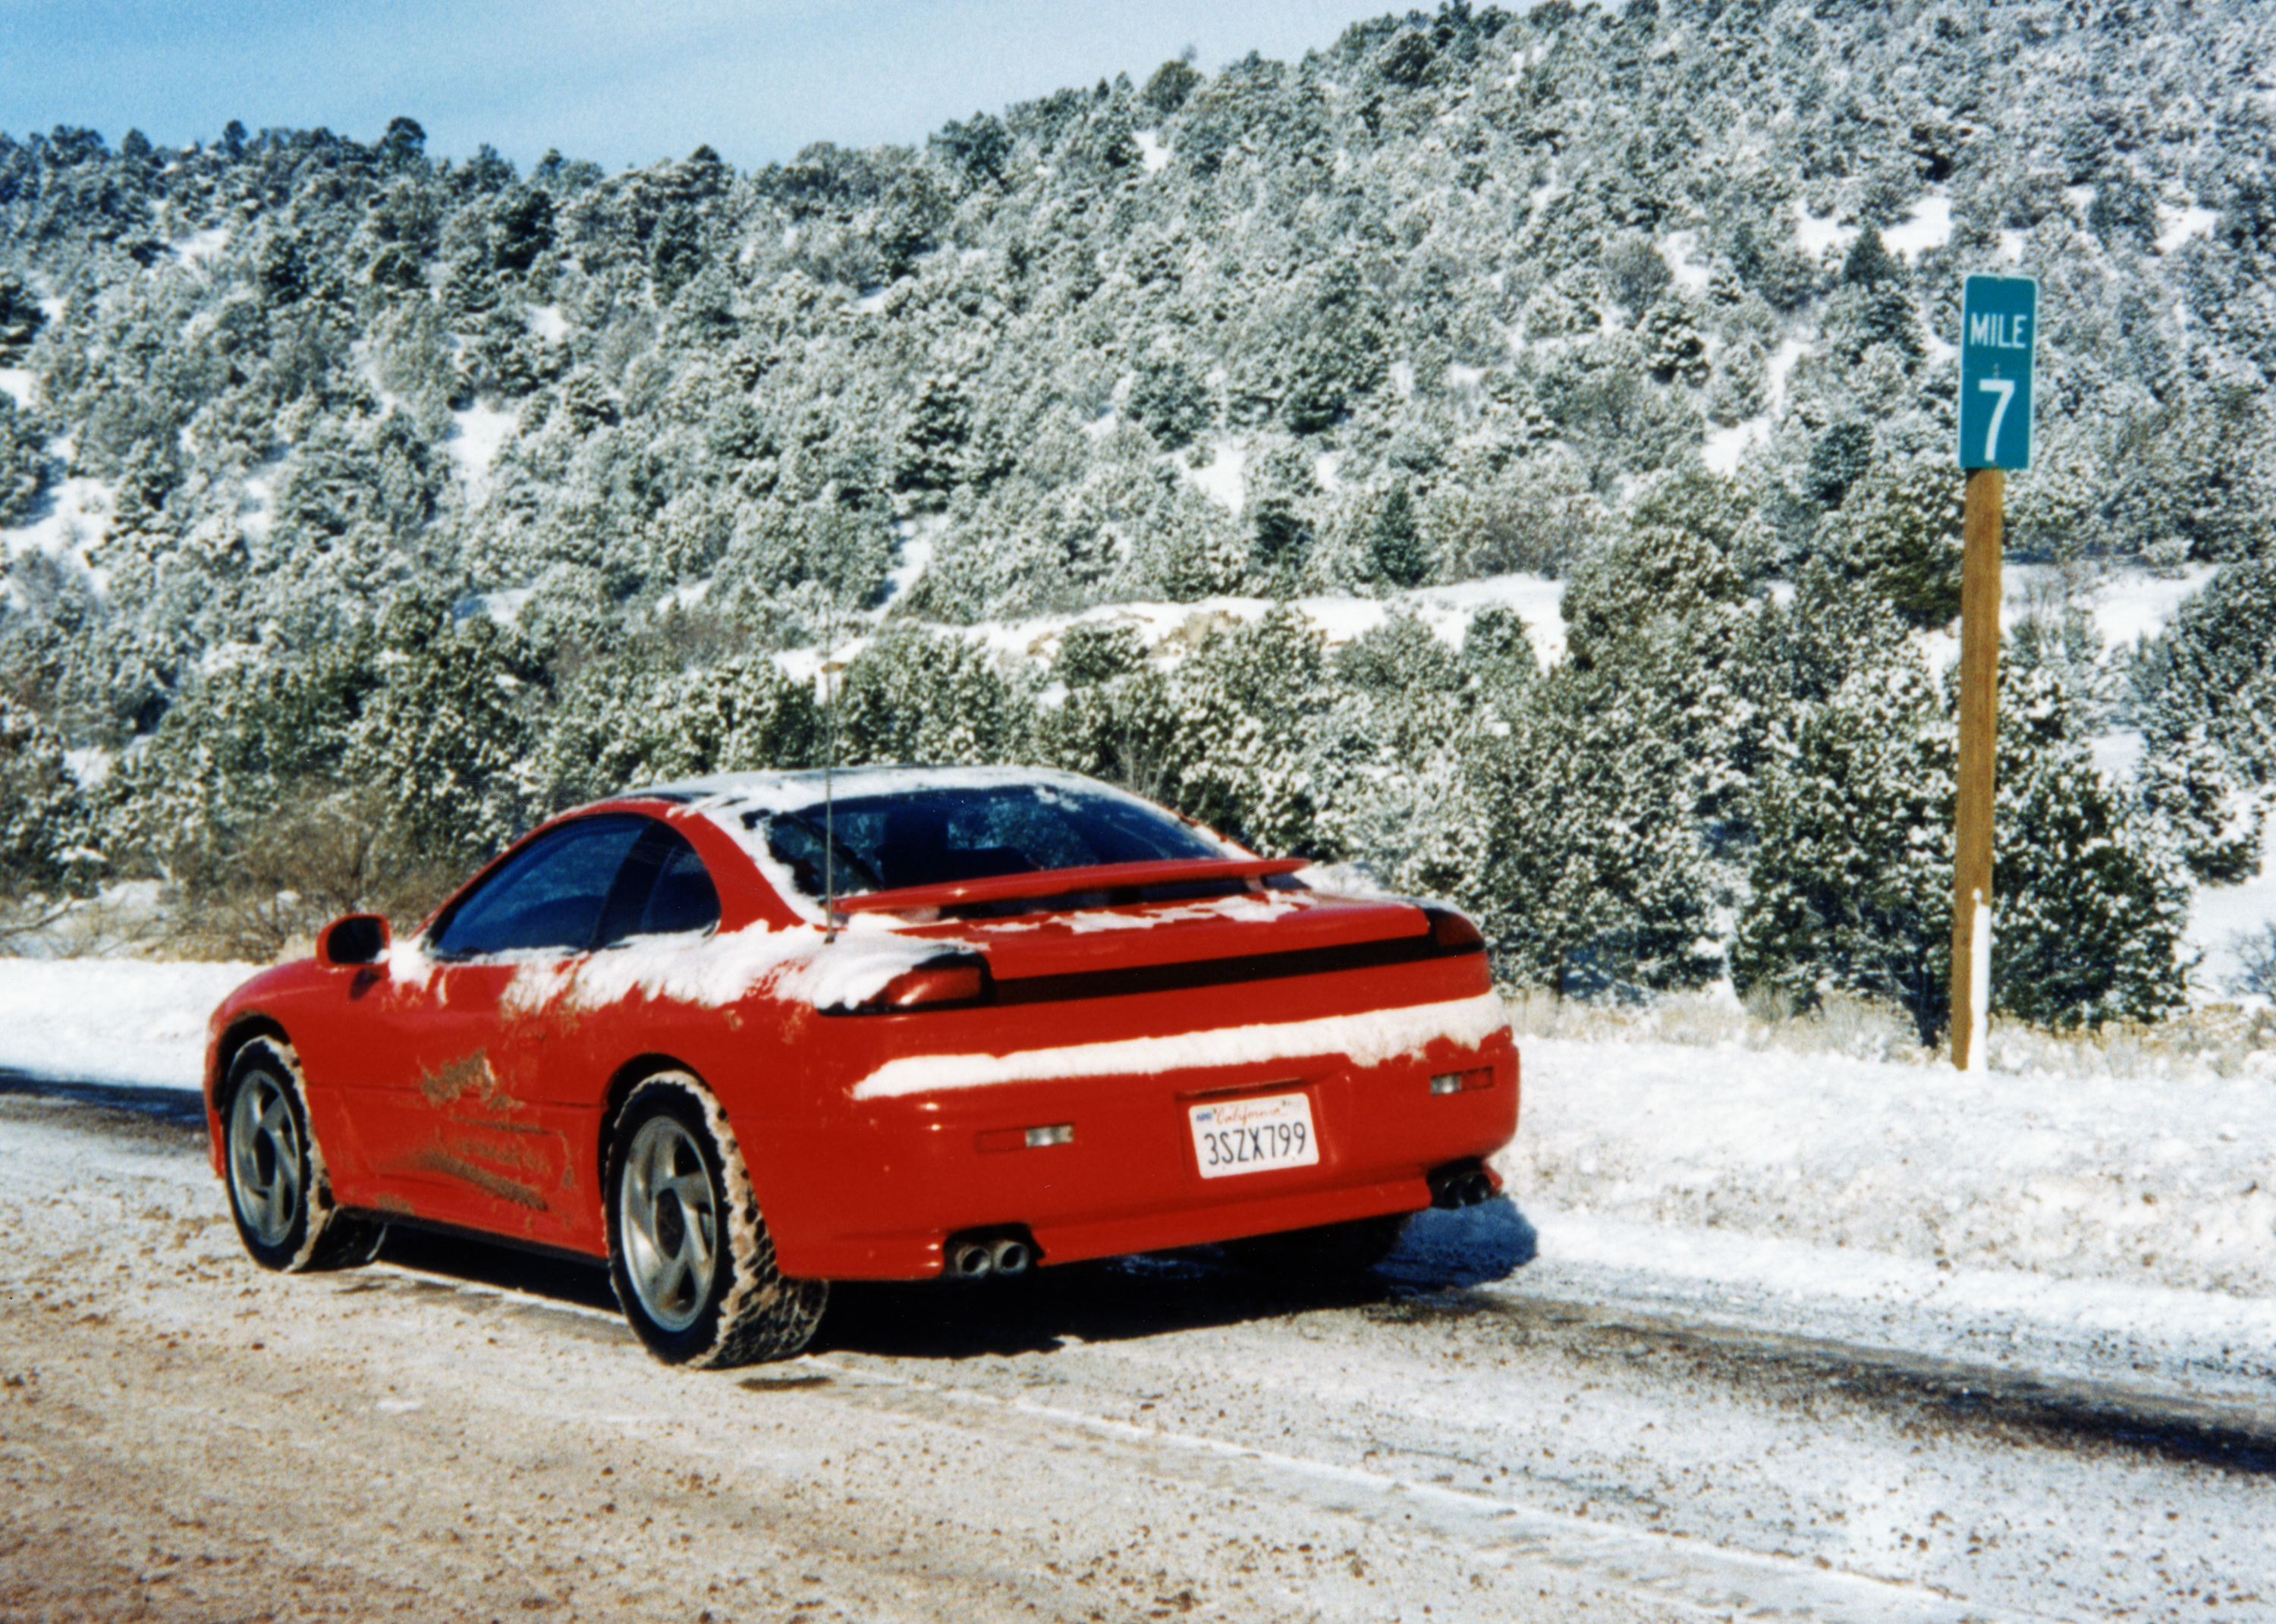 1991 Dodge Stealth RT Twin Turbo Snow